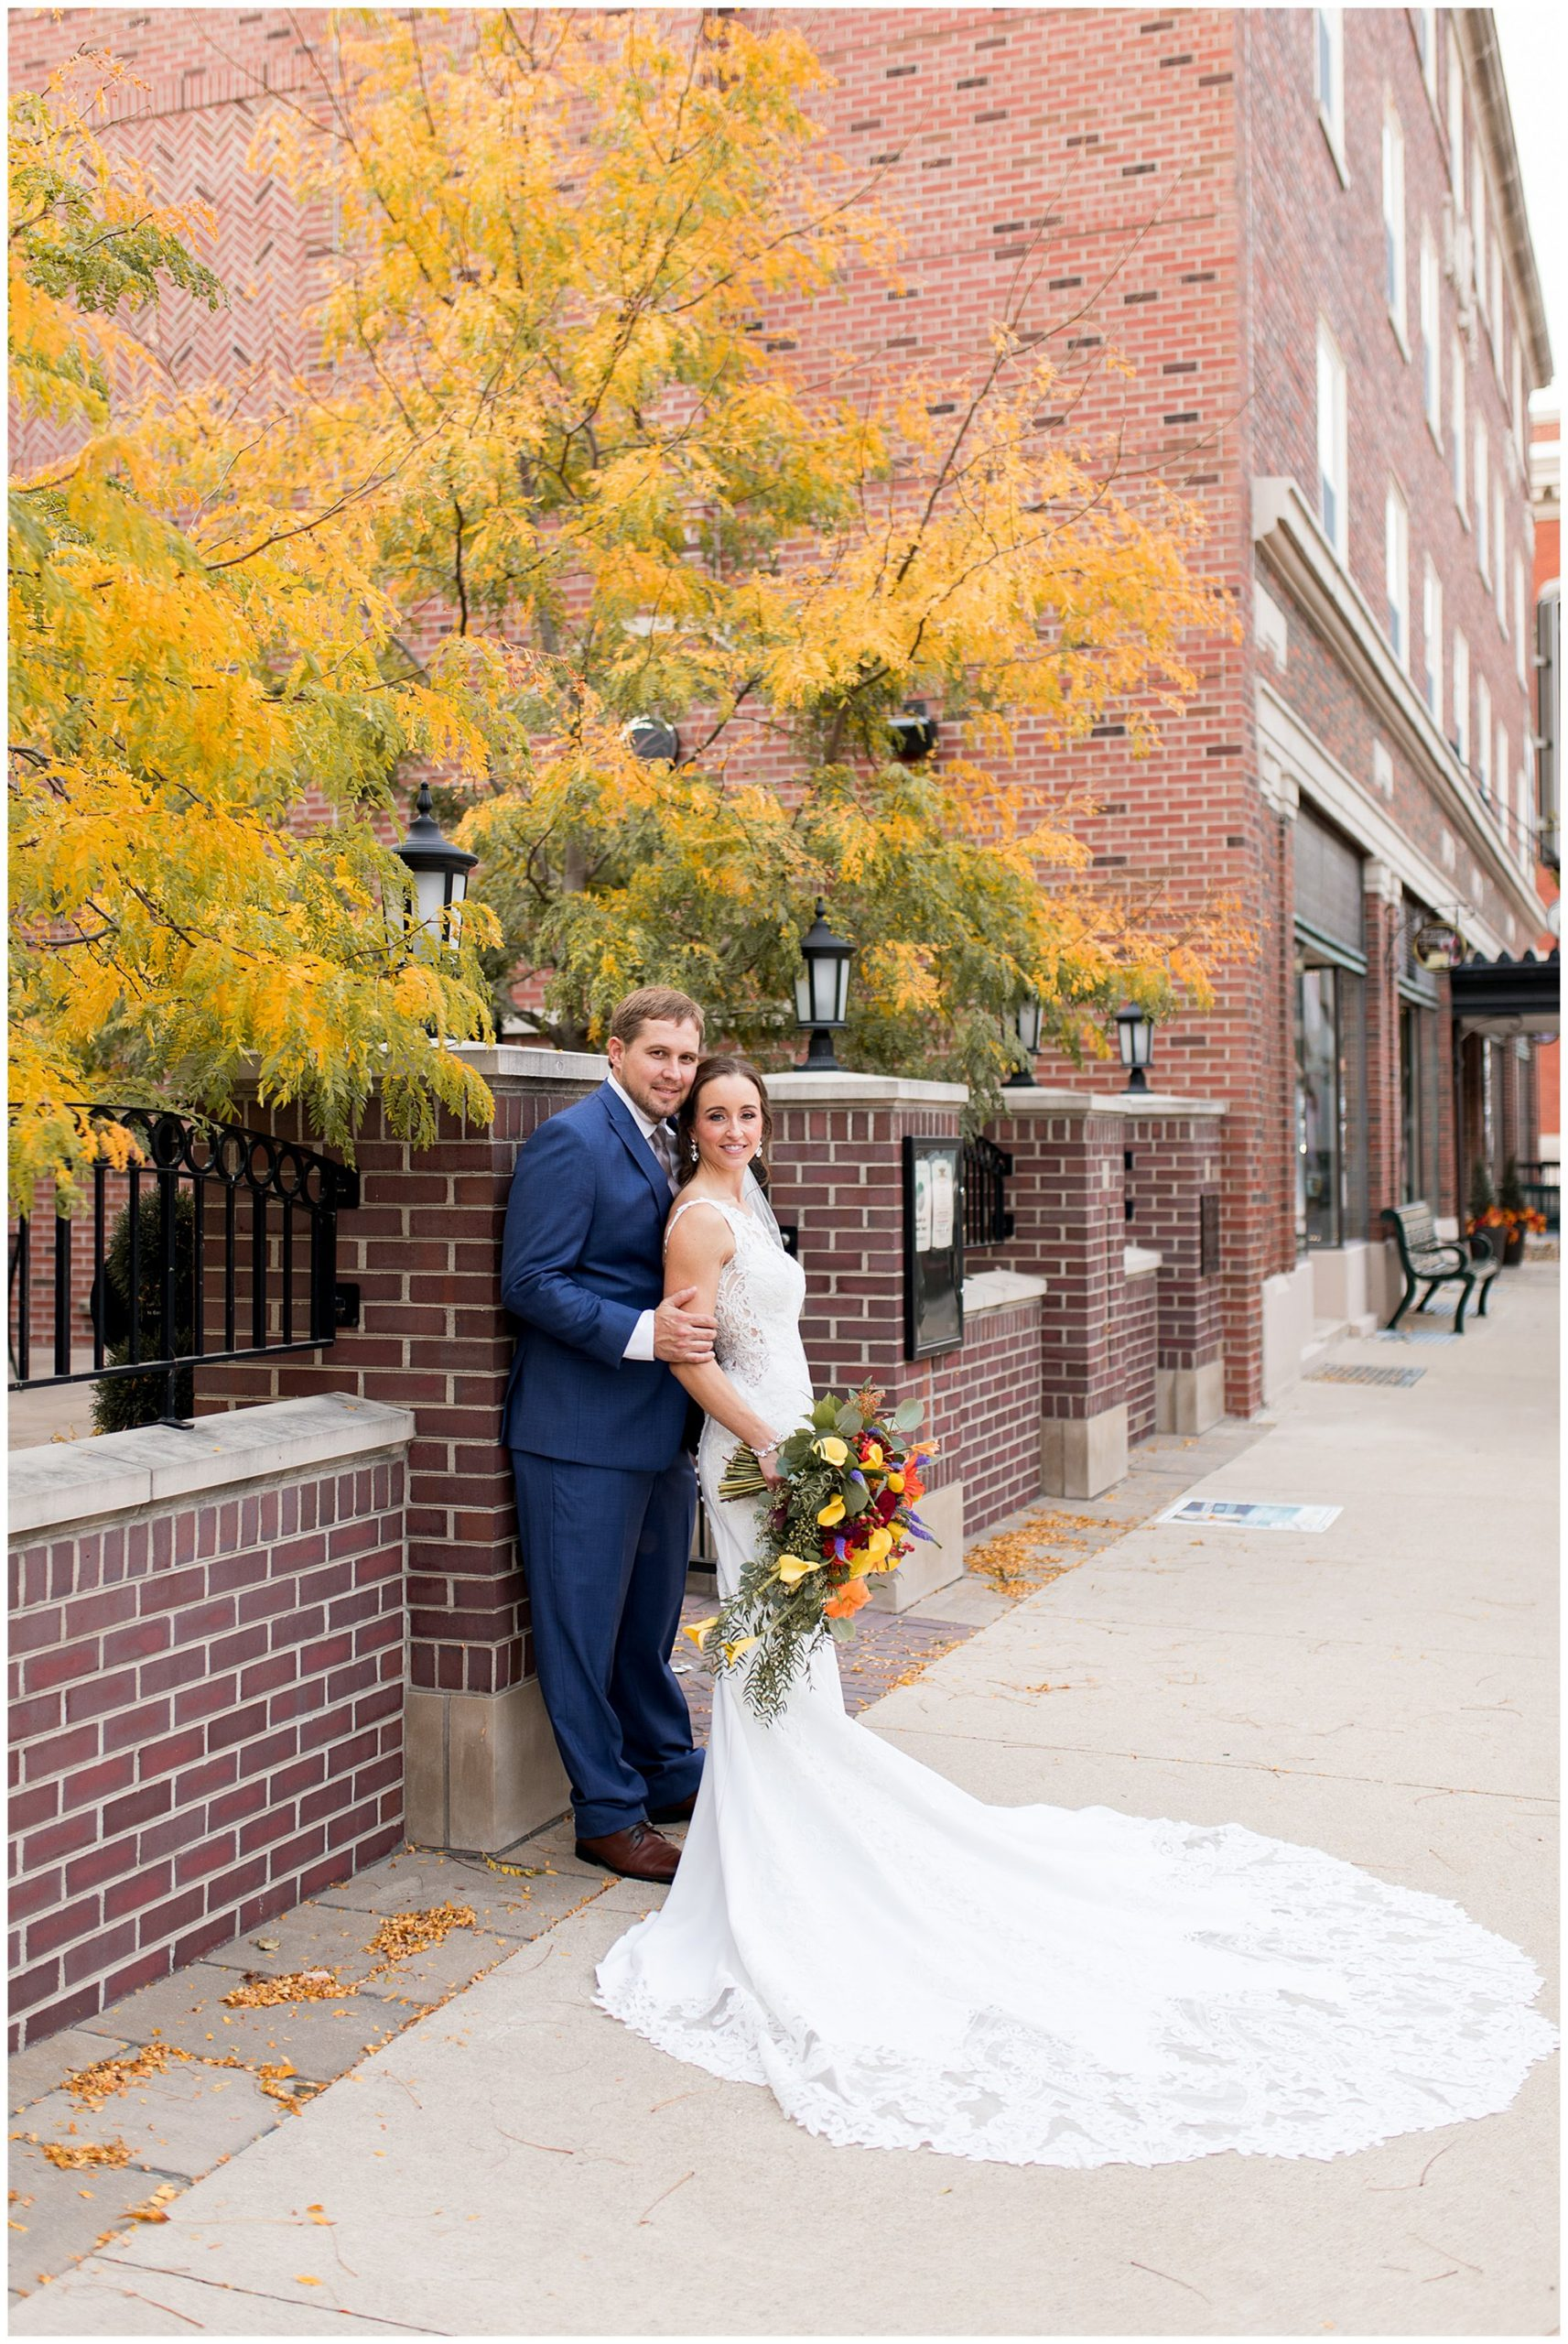 Eagles Theatre wedding in Wabash Indiana